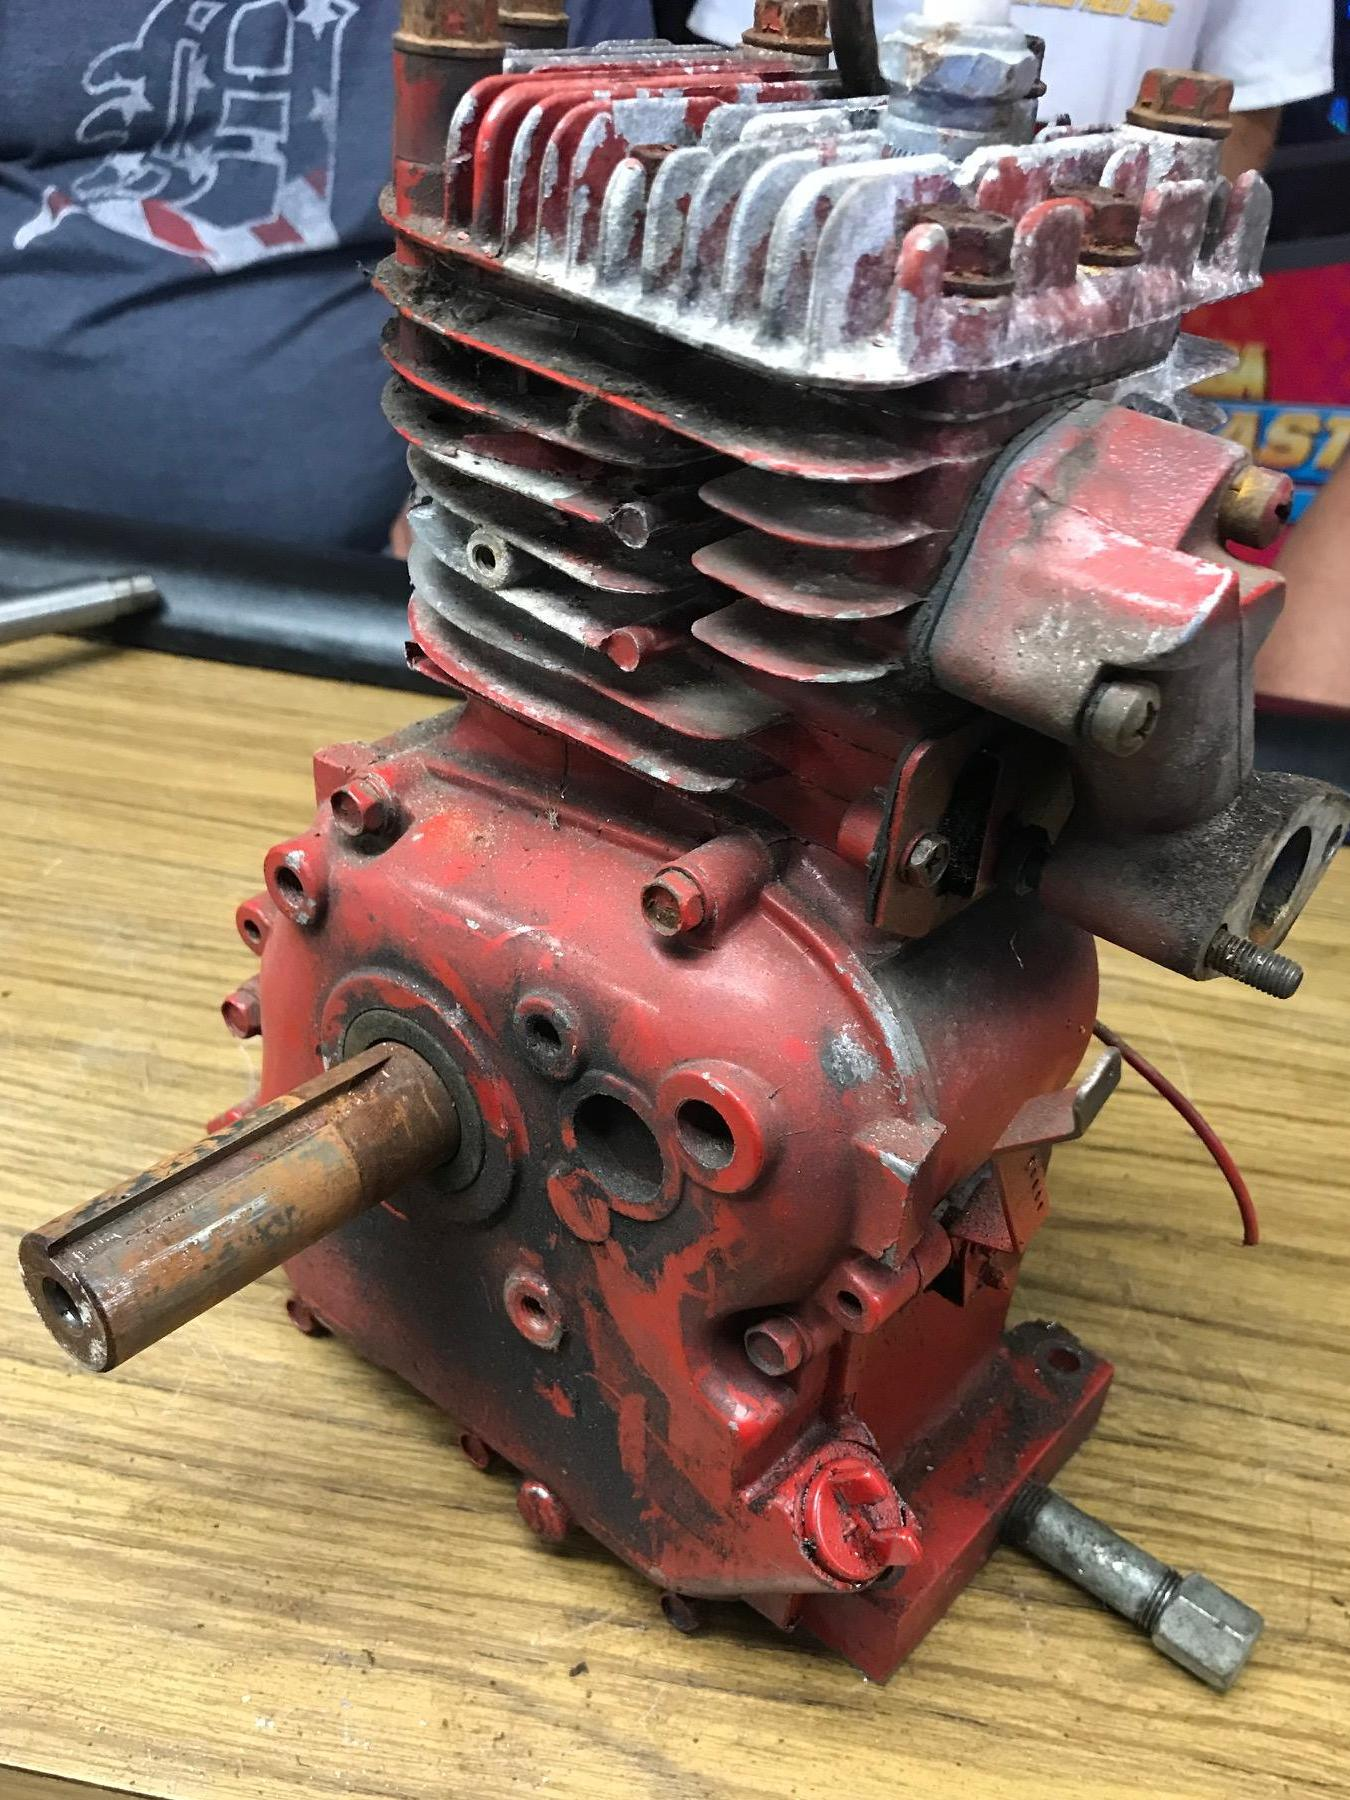 Tecumseh Engine Rebuild for Mini Bikes and Conversion from Snow